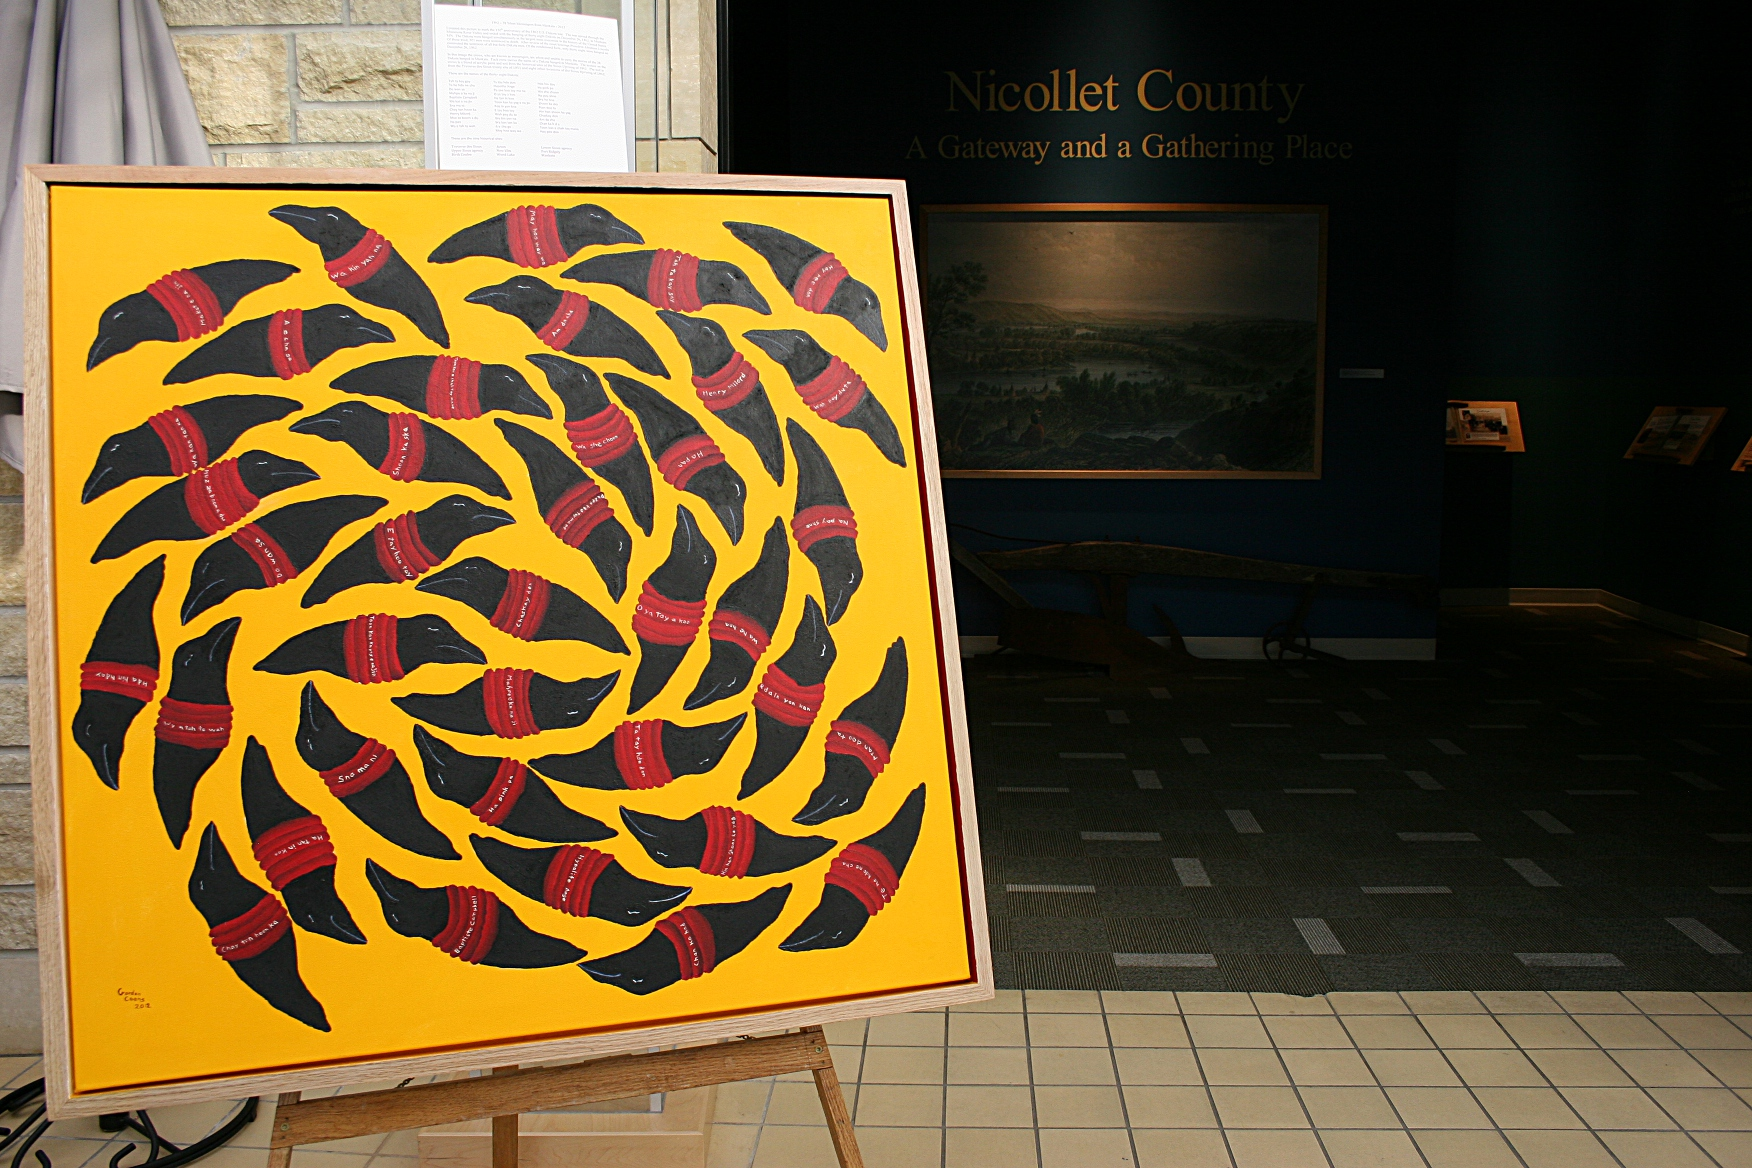 """This artwork by Gordon M. Coons, which was on recent temporary display at the Traverse des Sioux Treaty Center, marks the 150th anniversary of the U.S.-Dakota War of 1862. According to information posted with the piece, """"...the crows, known as messengers, are silent and unable to carry the stories of the 38 Dakota hanged in Mankato. Each crow carries the name of a Dakota hanged in Mankato. The texture on the crows is a blend of acrylic paint and soil from the historical sites of the Sioux Uprising of 1862. The soil is from the Traverse des Sioux treaty site of 1851 and eight other locations of the Sioux Uprising of 1862."""""""